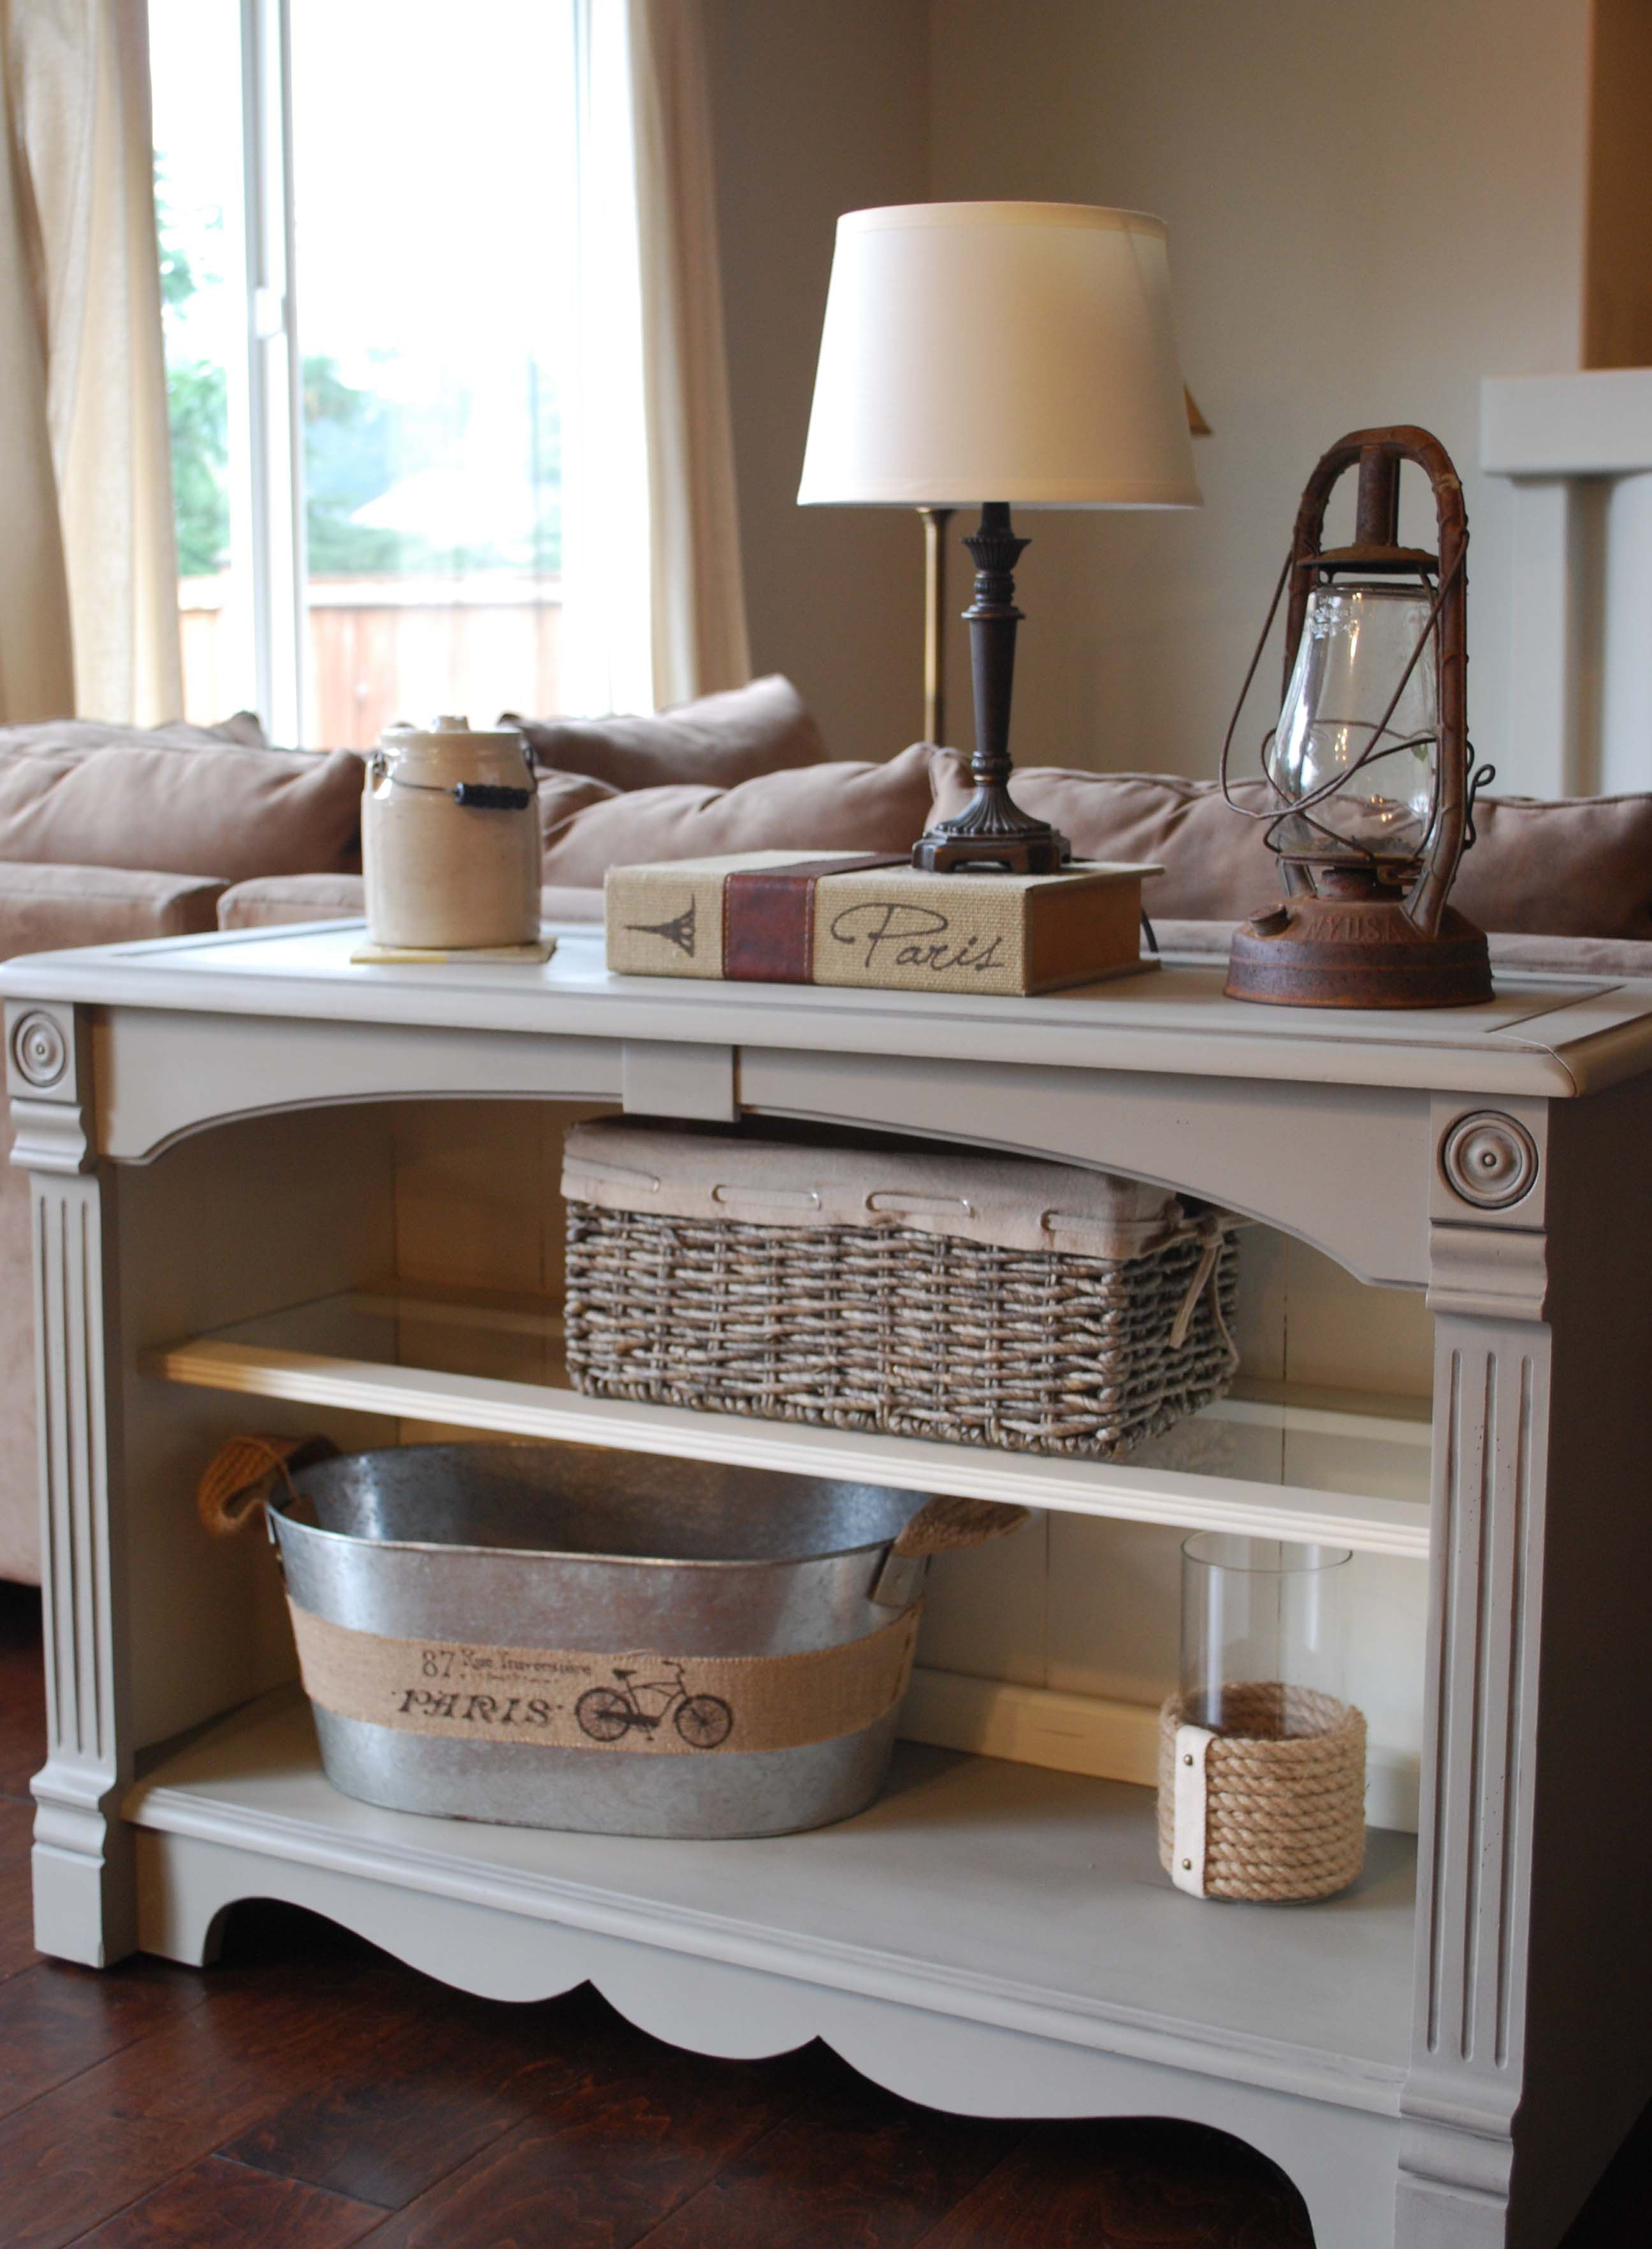 Annie sloan chalk paint french linen and old white painted sofa annie sloan chalk paint french linen and old white painted sofa tablebuffet geotapseo Image collections